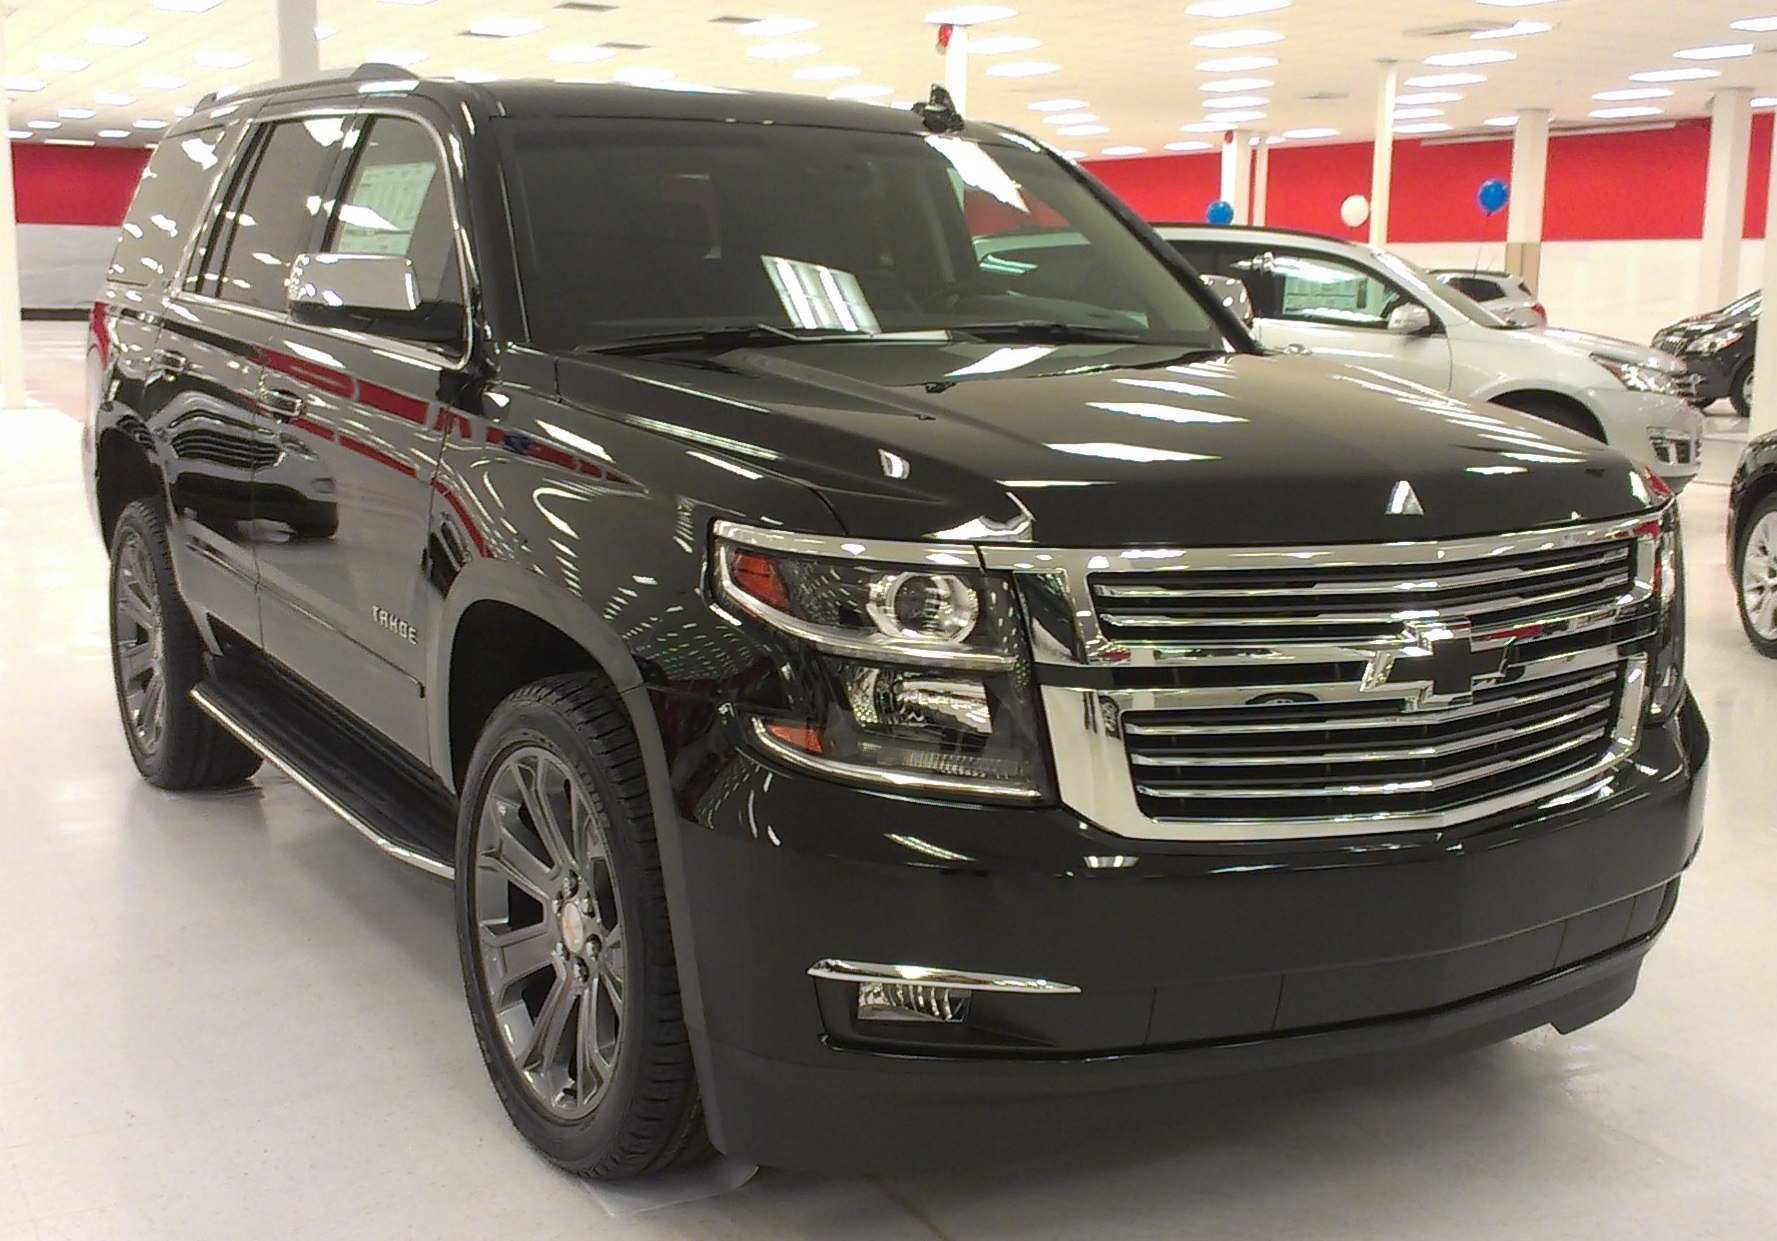 53 New 2020 Chevy Tahoe Z71 Ss Wallpaper